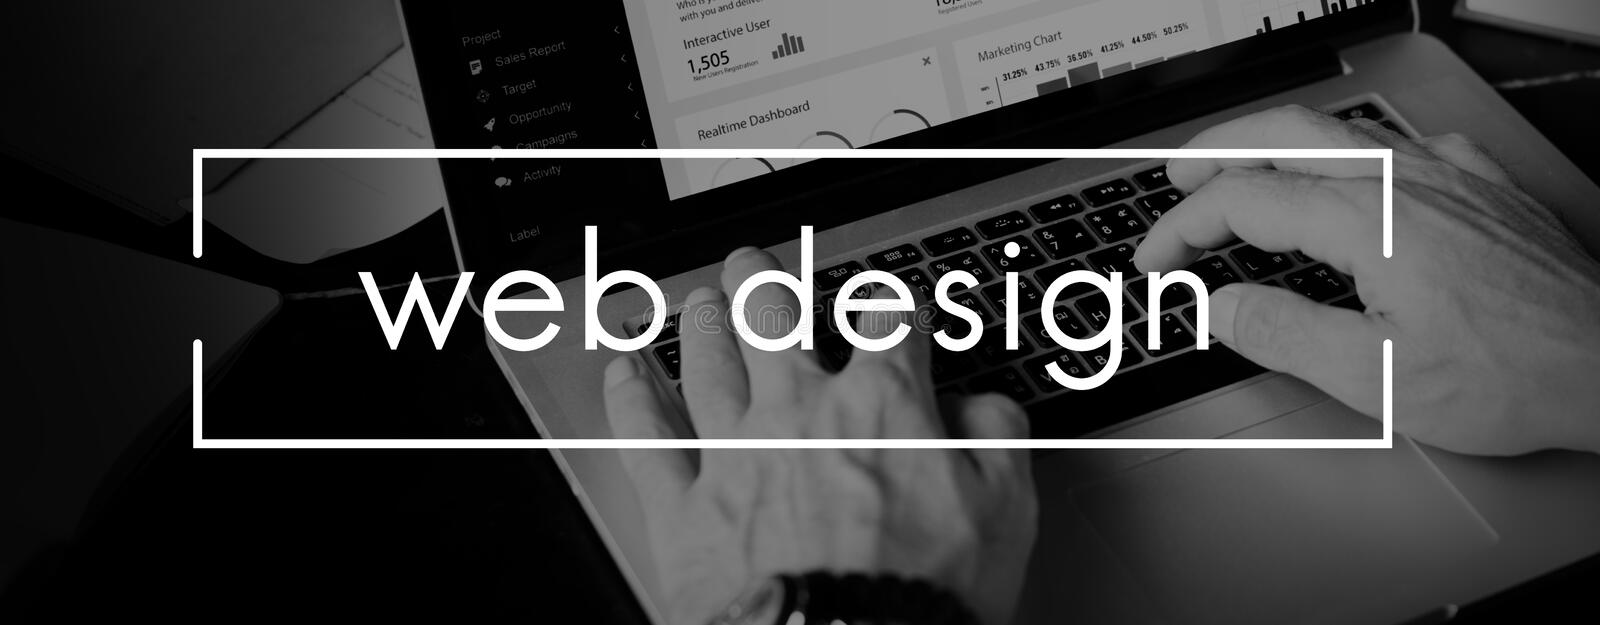 Web Design Homepage Internet layout Software Concept stock photos